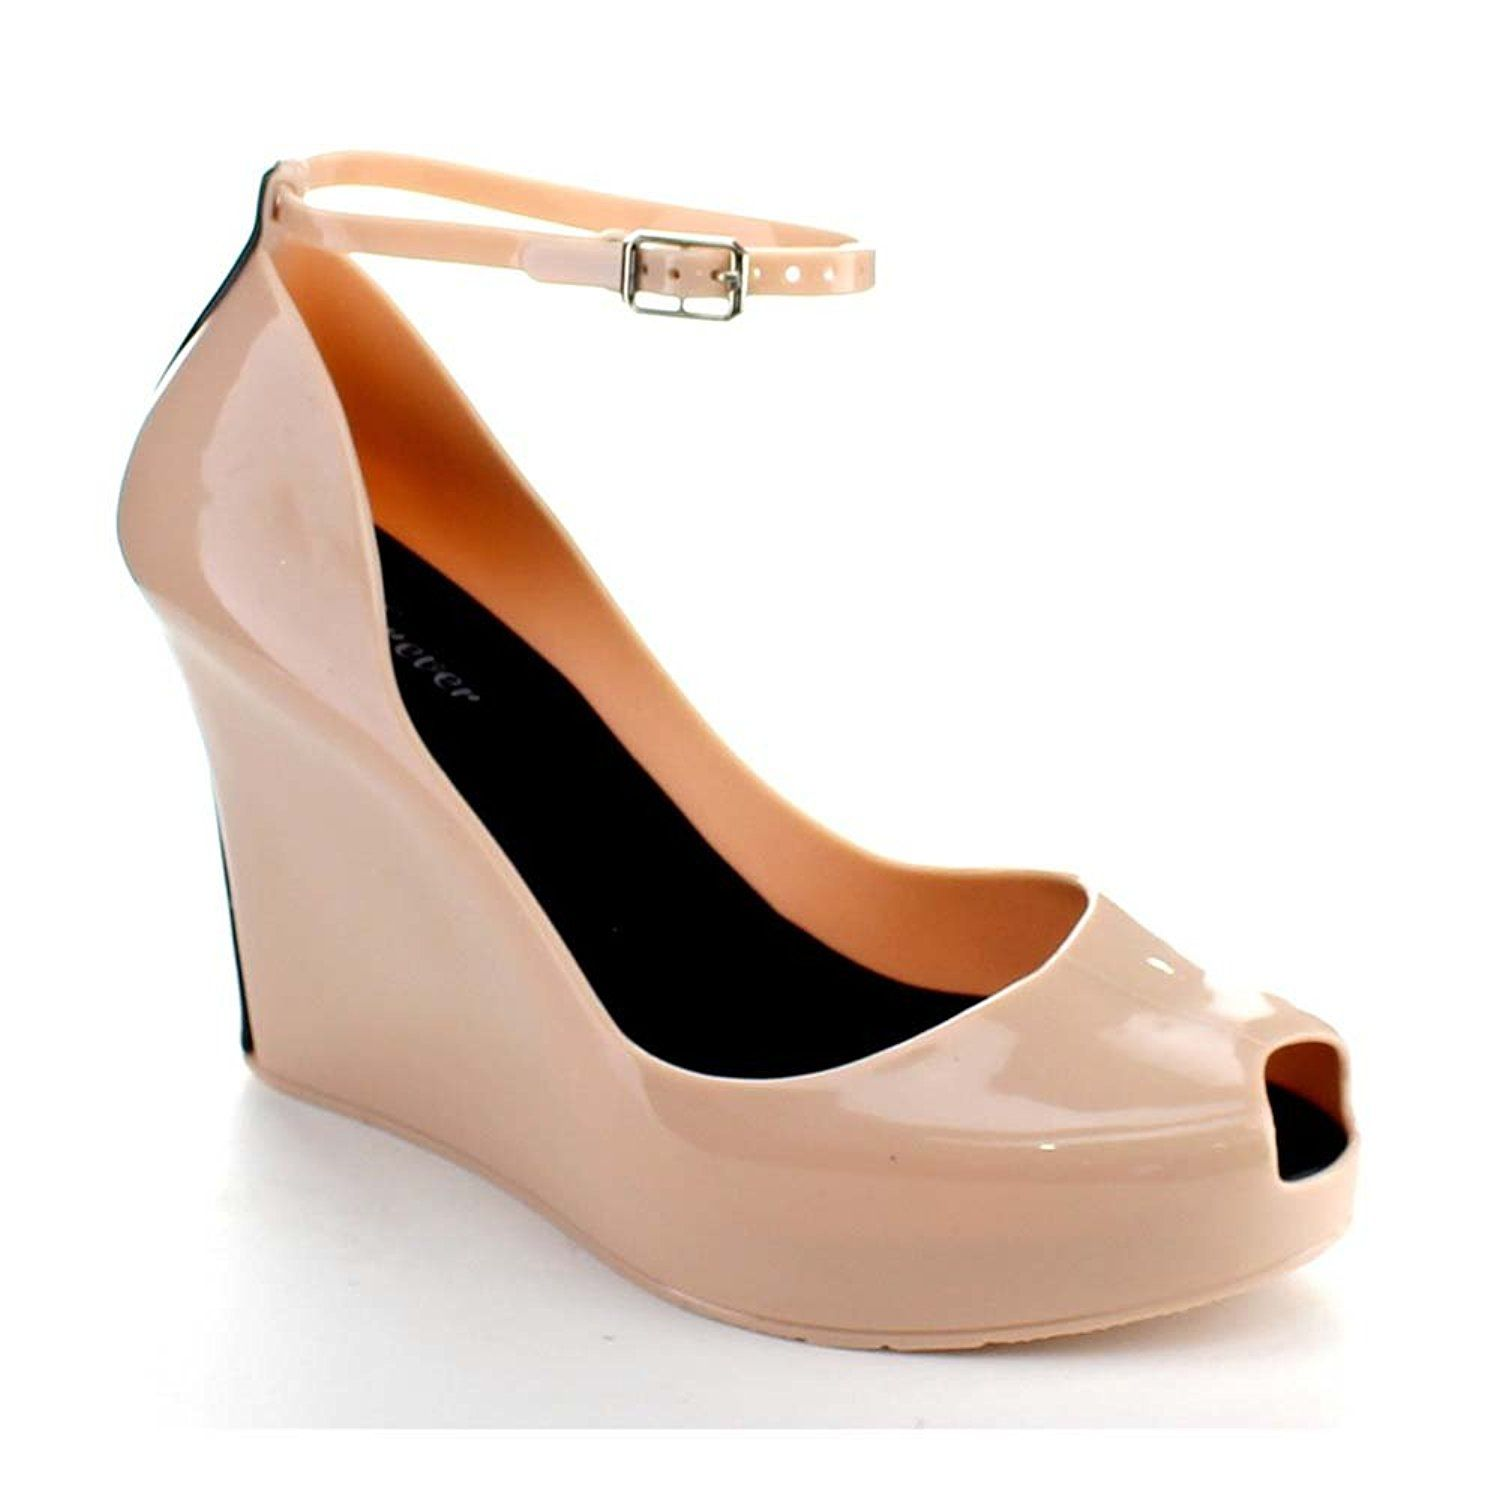 Women's jelly sandals size 10 - Forever Rosemary 86 Women S Peep Toe Wedge Heel Jelly Sandals Color Nude